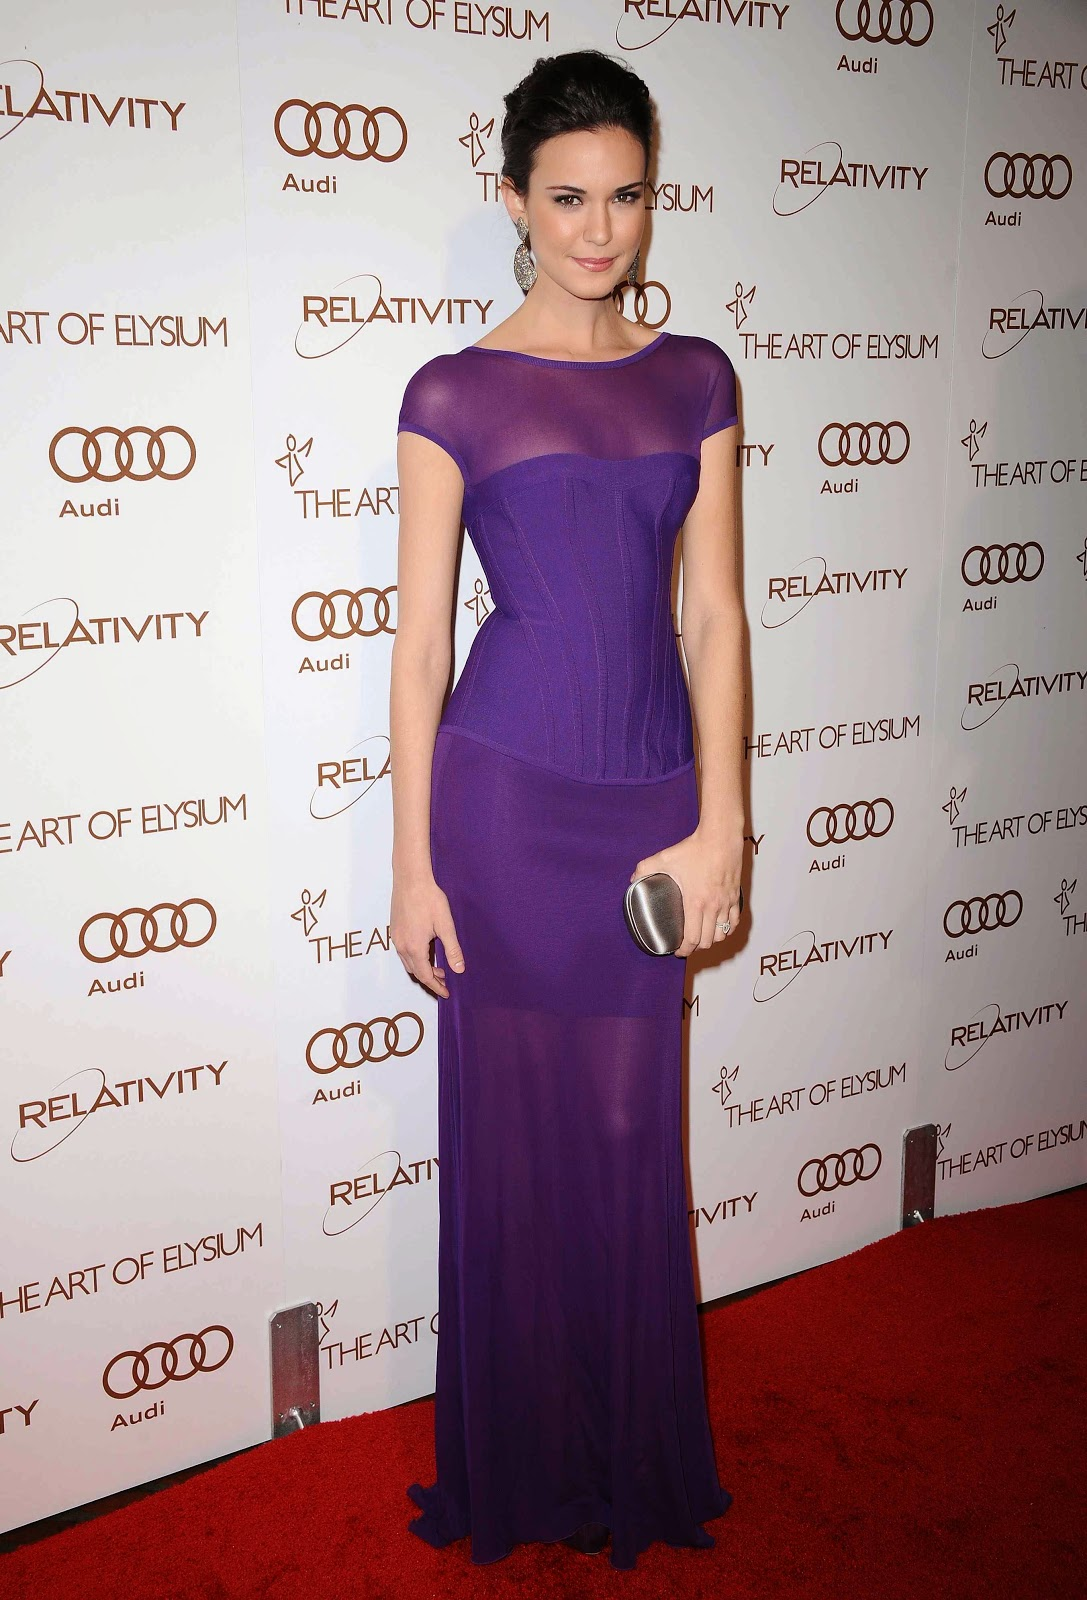 Odette Yustman HD Photos and Wallapers